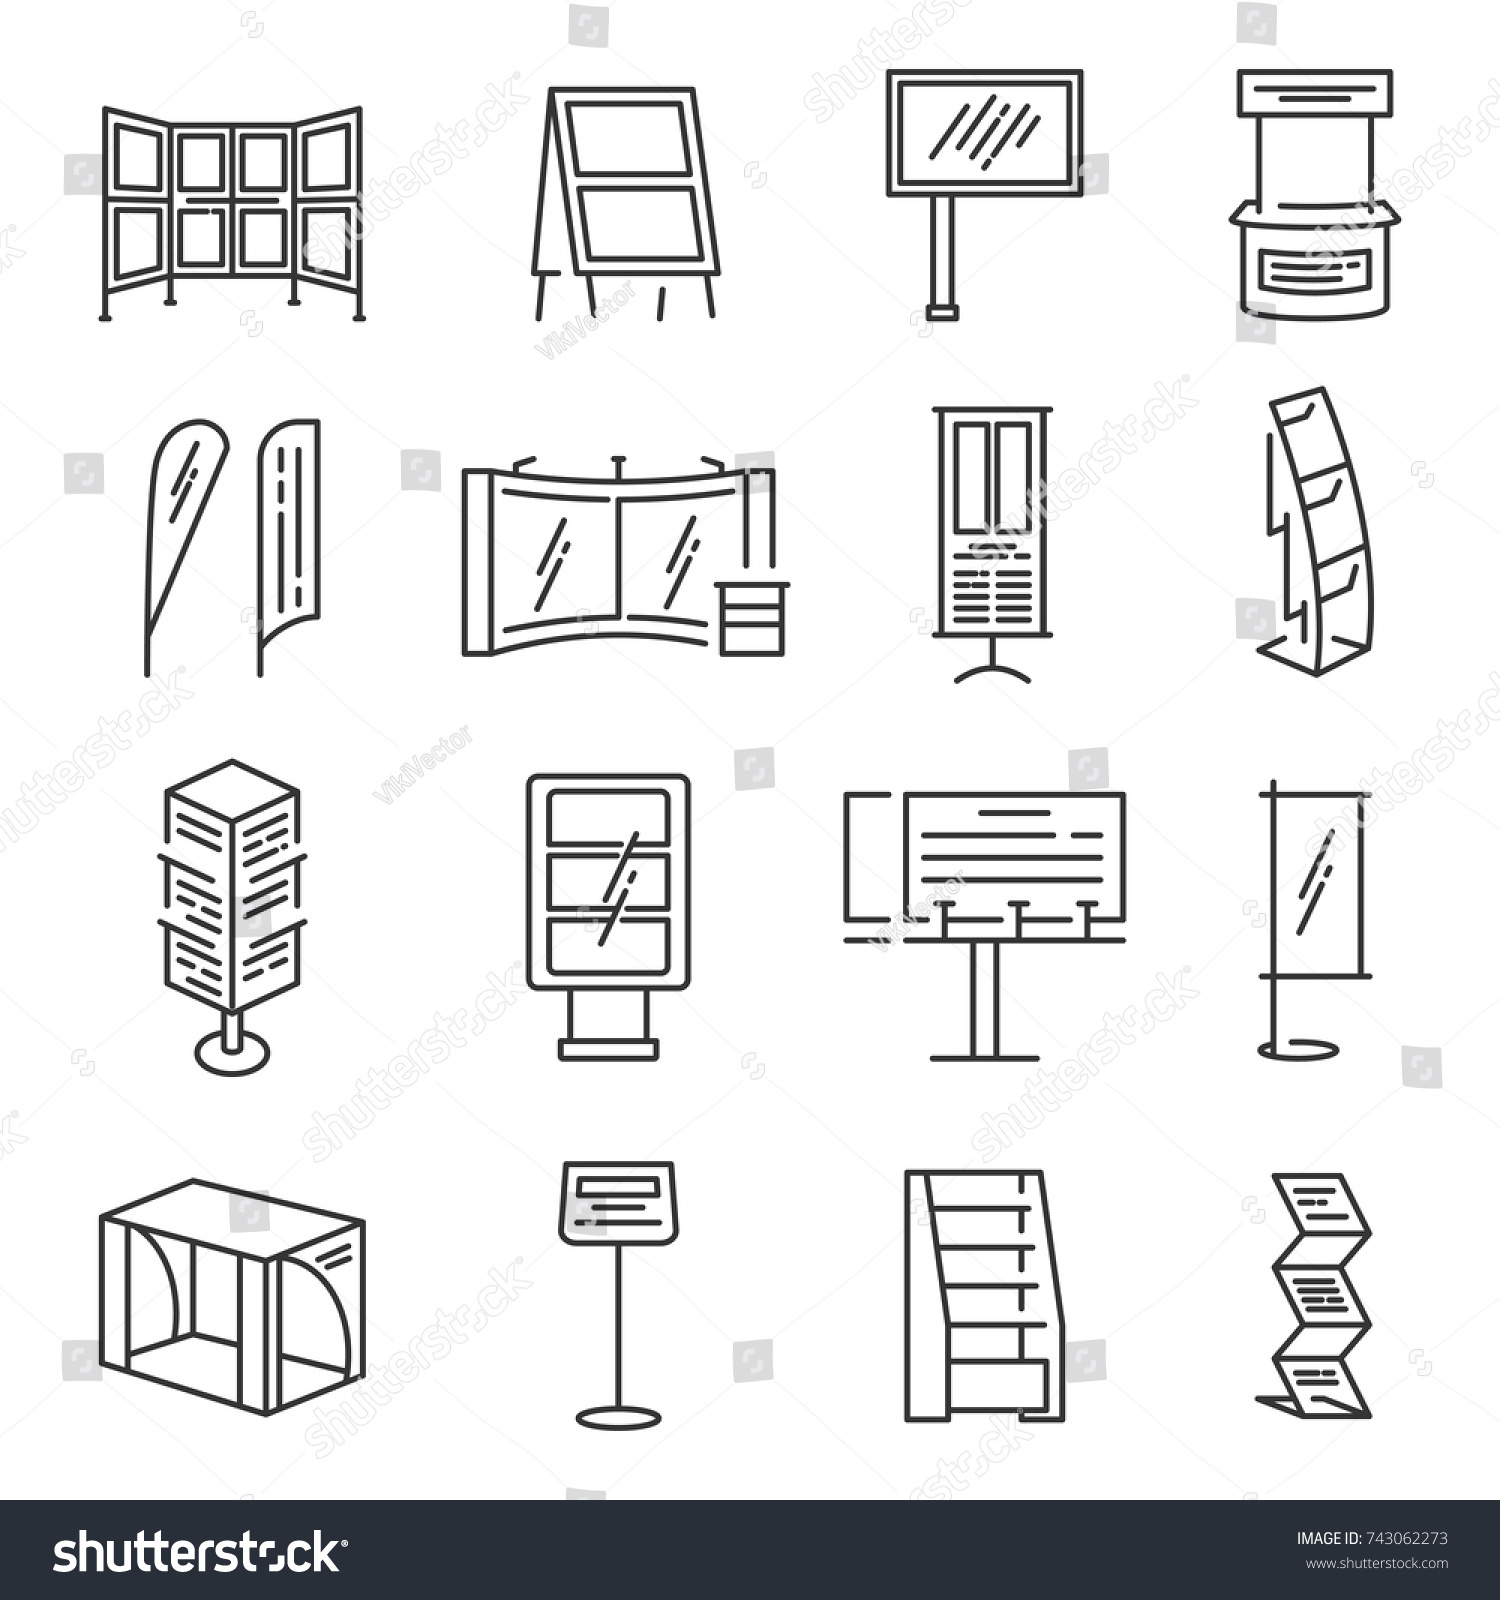 Exhibition Stand Icon : Exhibition stand icon set section stock vector